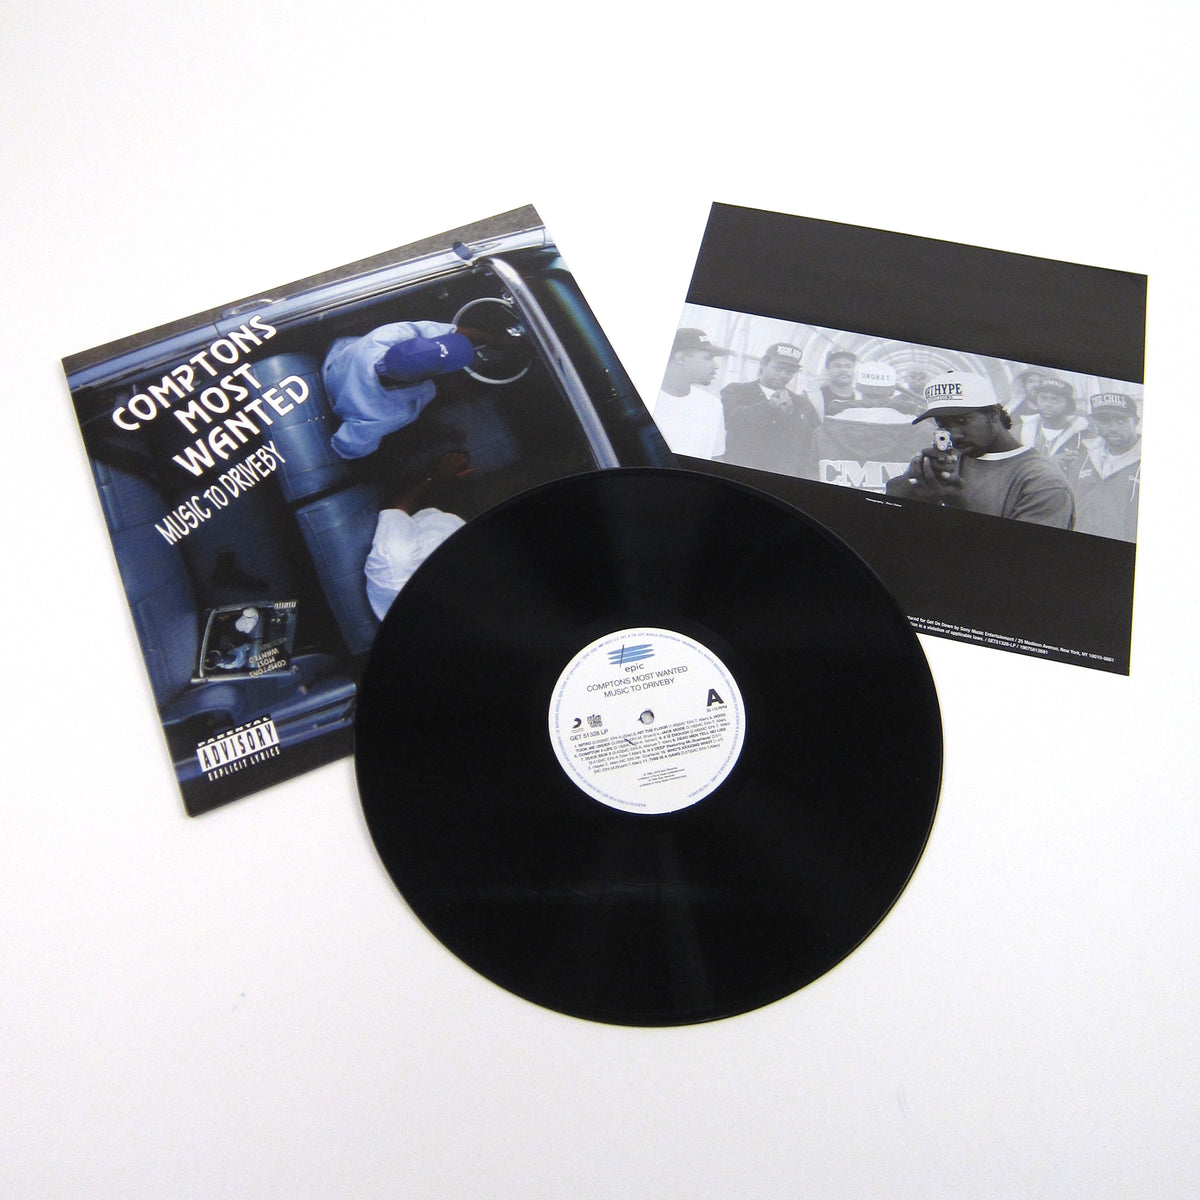 Comptons Most Wanted: Music To Driveby Vinyl LP (Record Store Day)